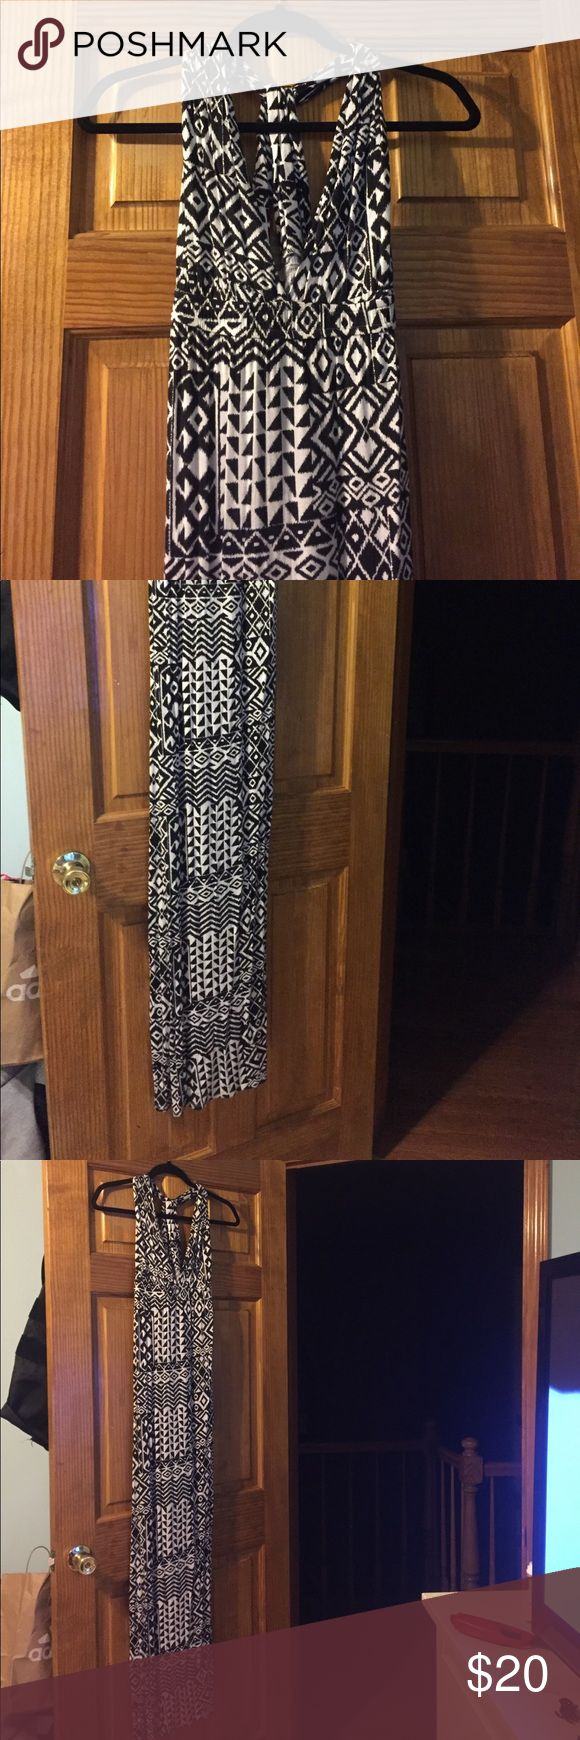 """Tribal Maxi Dress tribal print black and white maxi dress! perfect for any occasion. Back has criss cross detail. No flaws, worn twice. I'm 5'4"""" and this falls right above heel. Would be great fit for all! Dresses Maxi"""